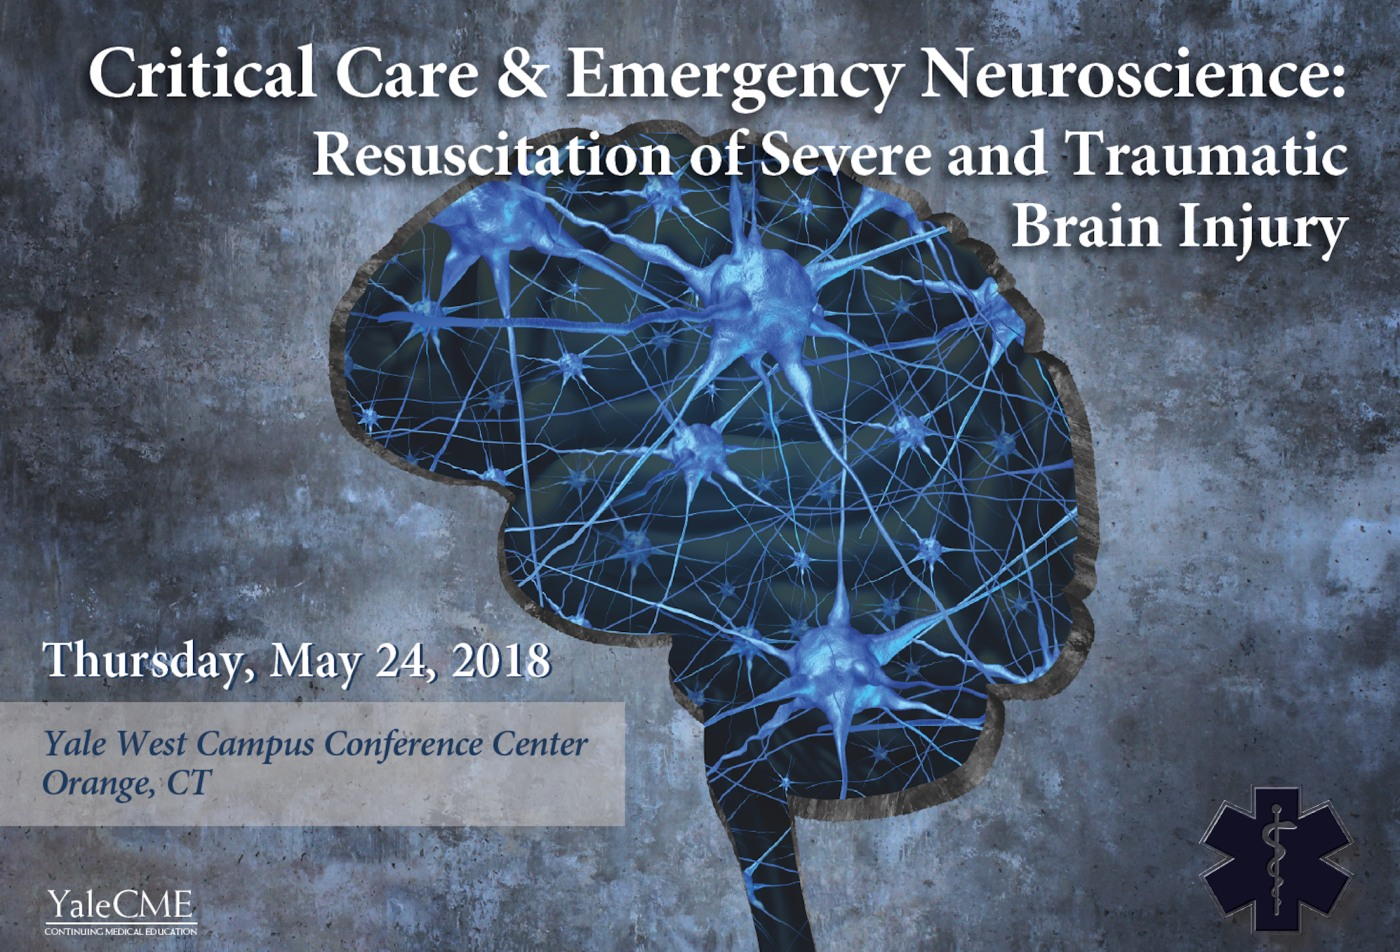 Critical Care and Emergency Neuroscience CME Course